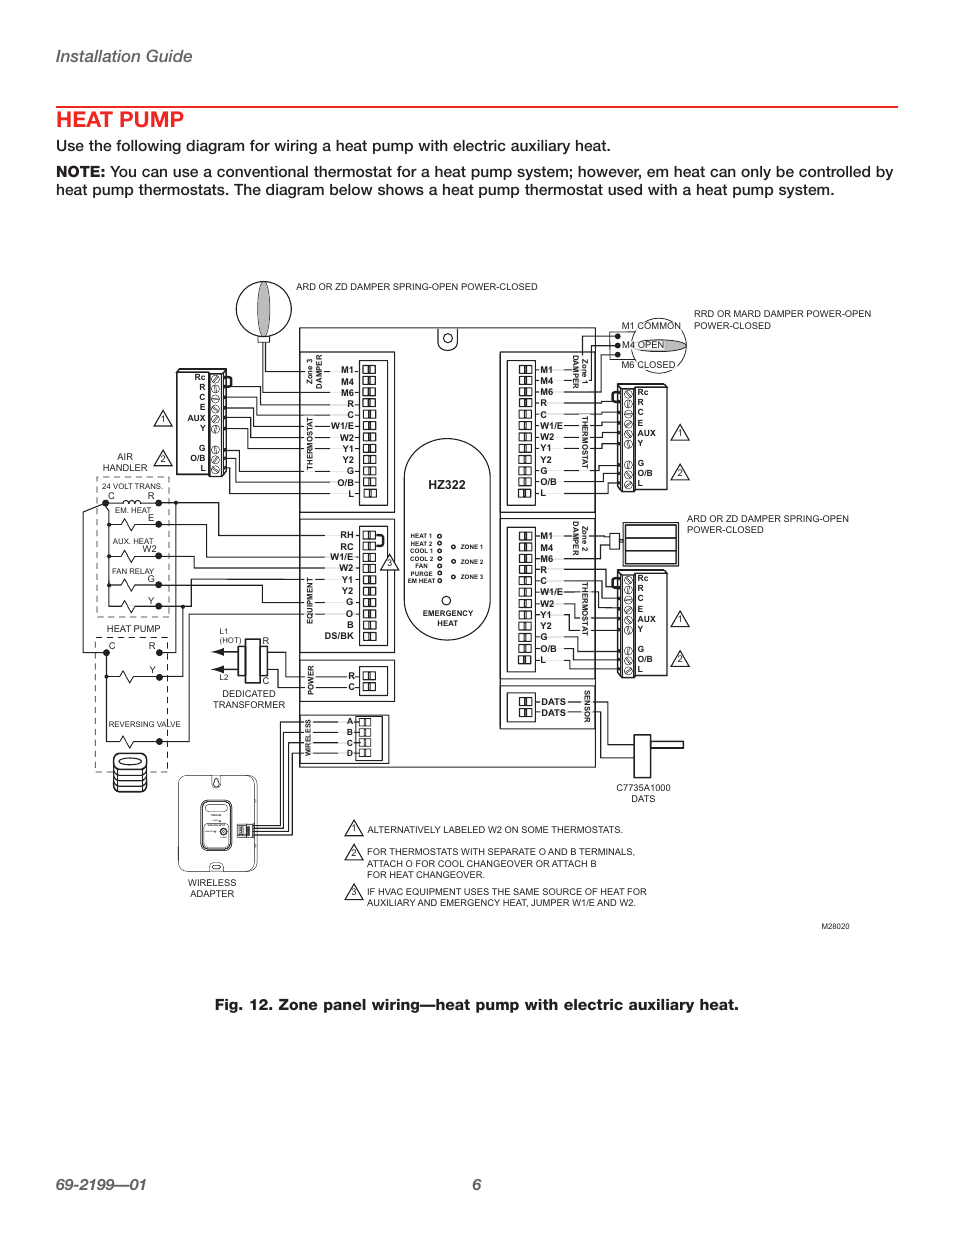 Luxaire Heat Pump Wiring Diagram Manual Guide